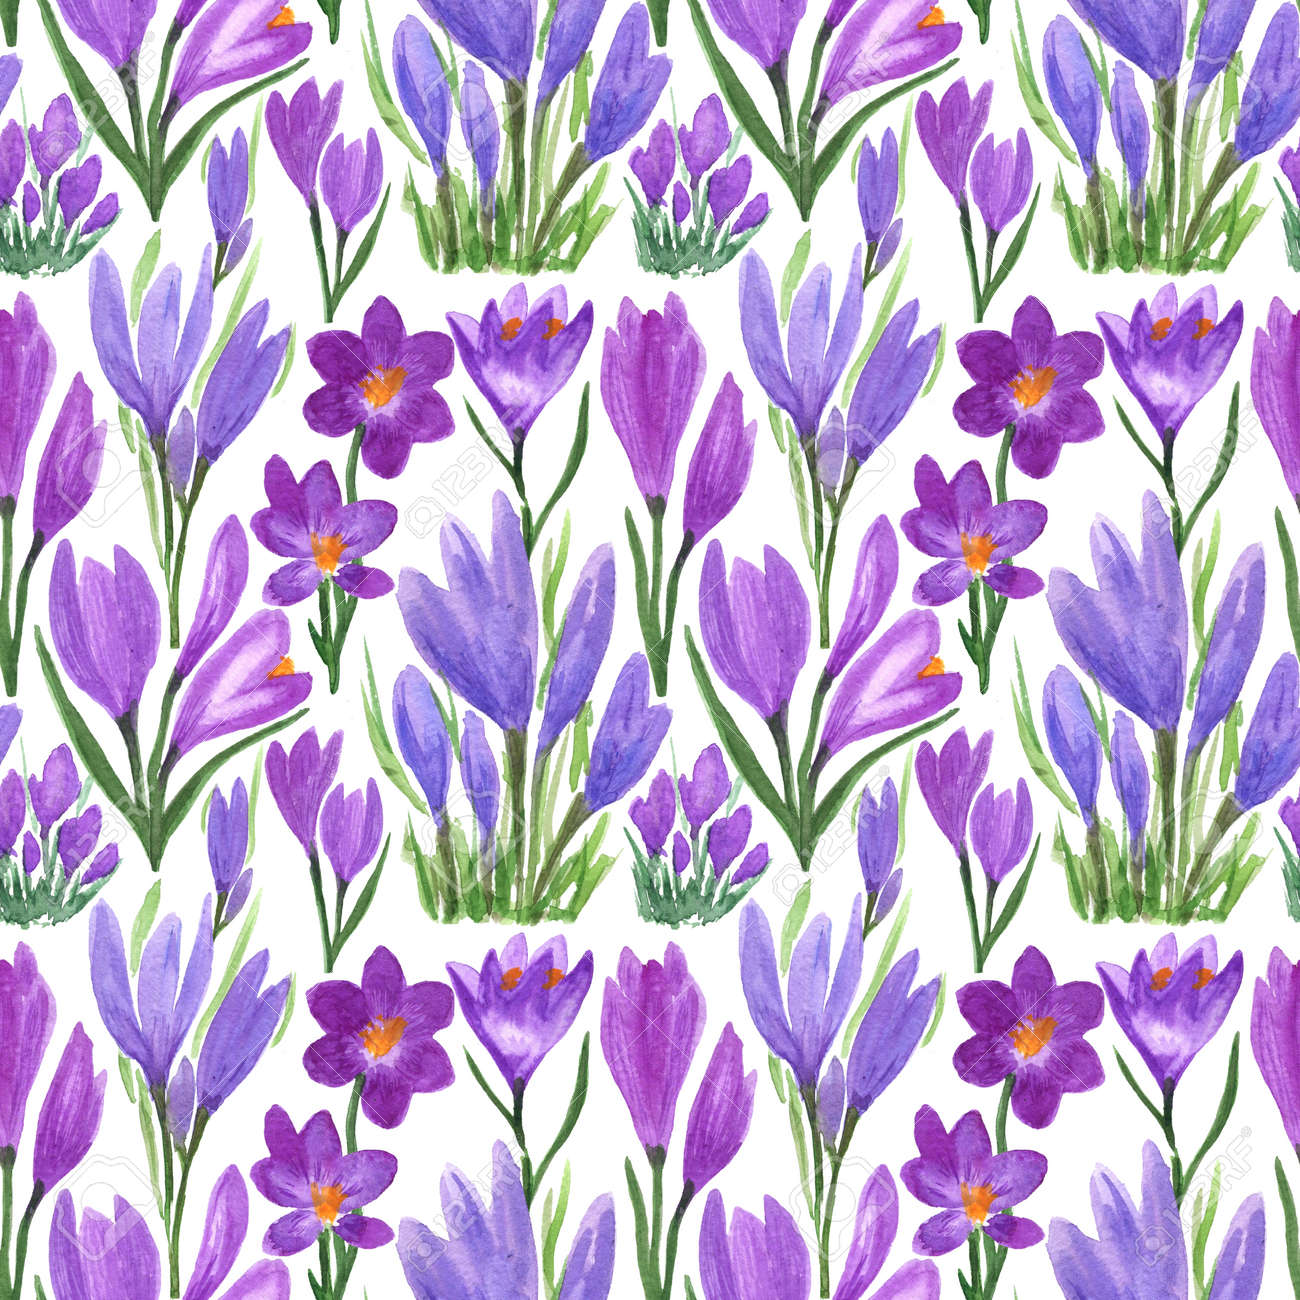 Waterclor colorful seamless pattern of spring flowers. Hand Illustration of primrose for creating fabrics, textile, decoupage, wallpapers, print, gift wrapping paper, invitations, textile. - 167408758